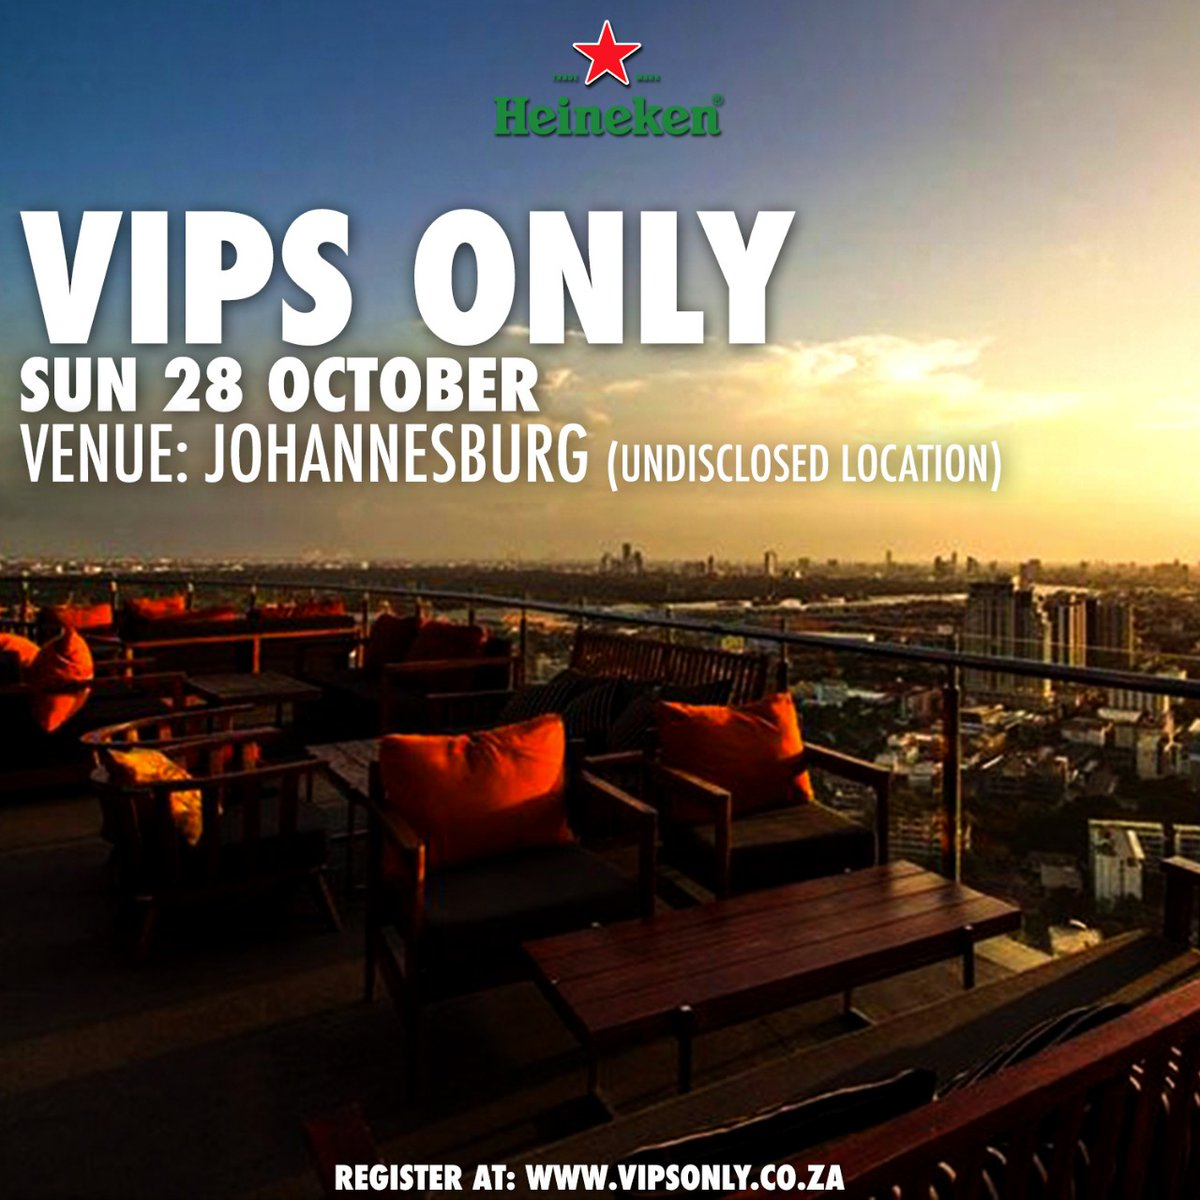 Euphonik to host VIPS ONLY event